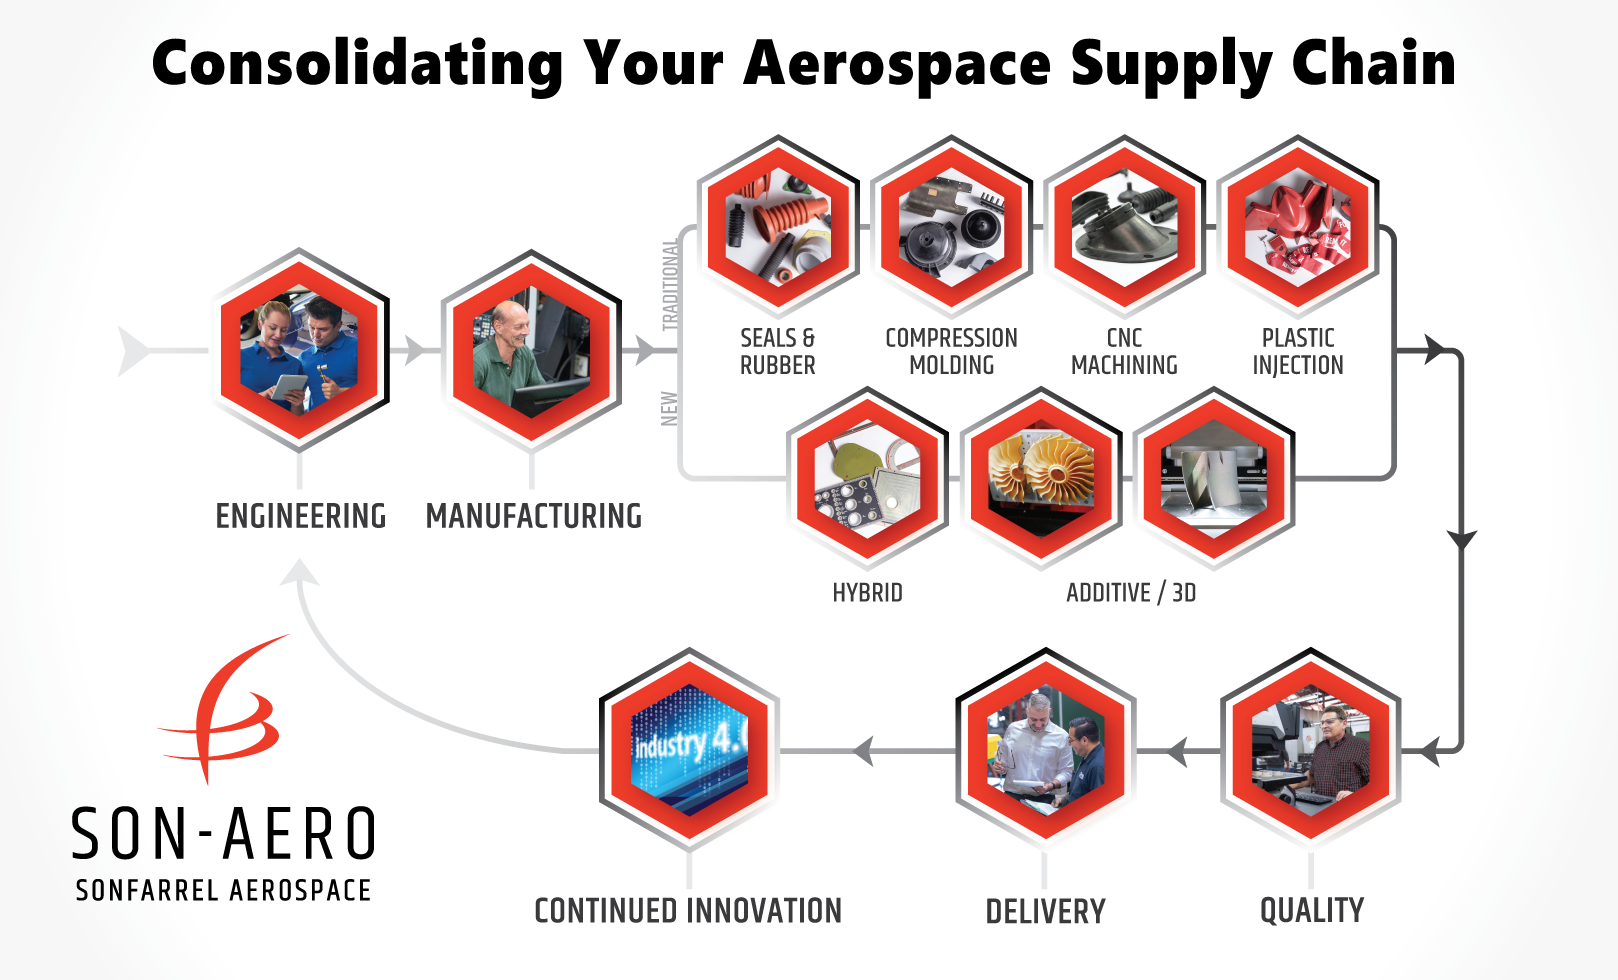 Consolidate Your Aerospace Supply Chain